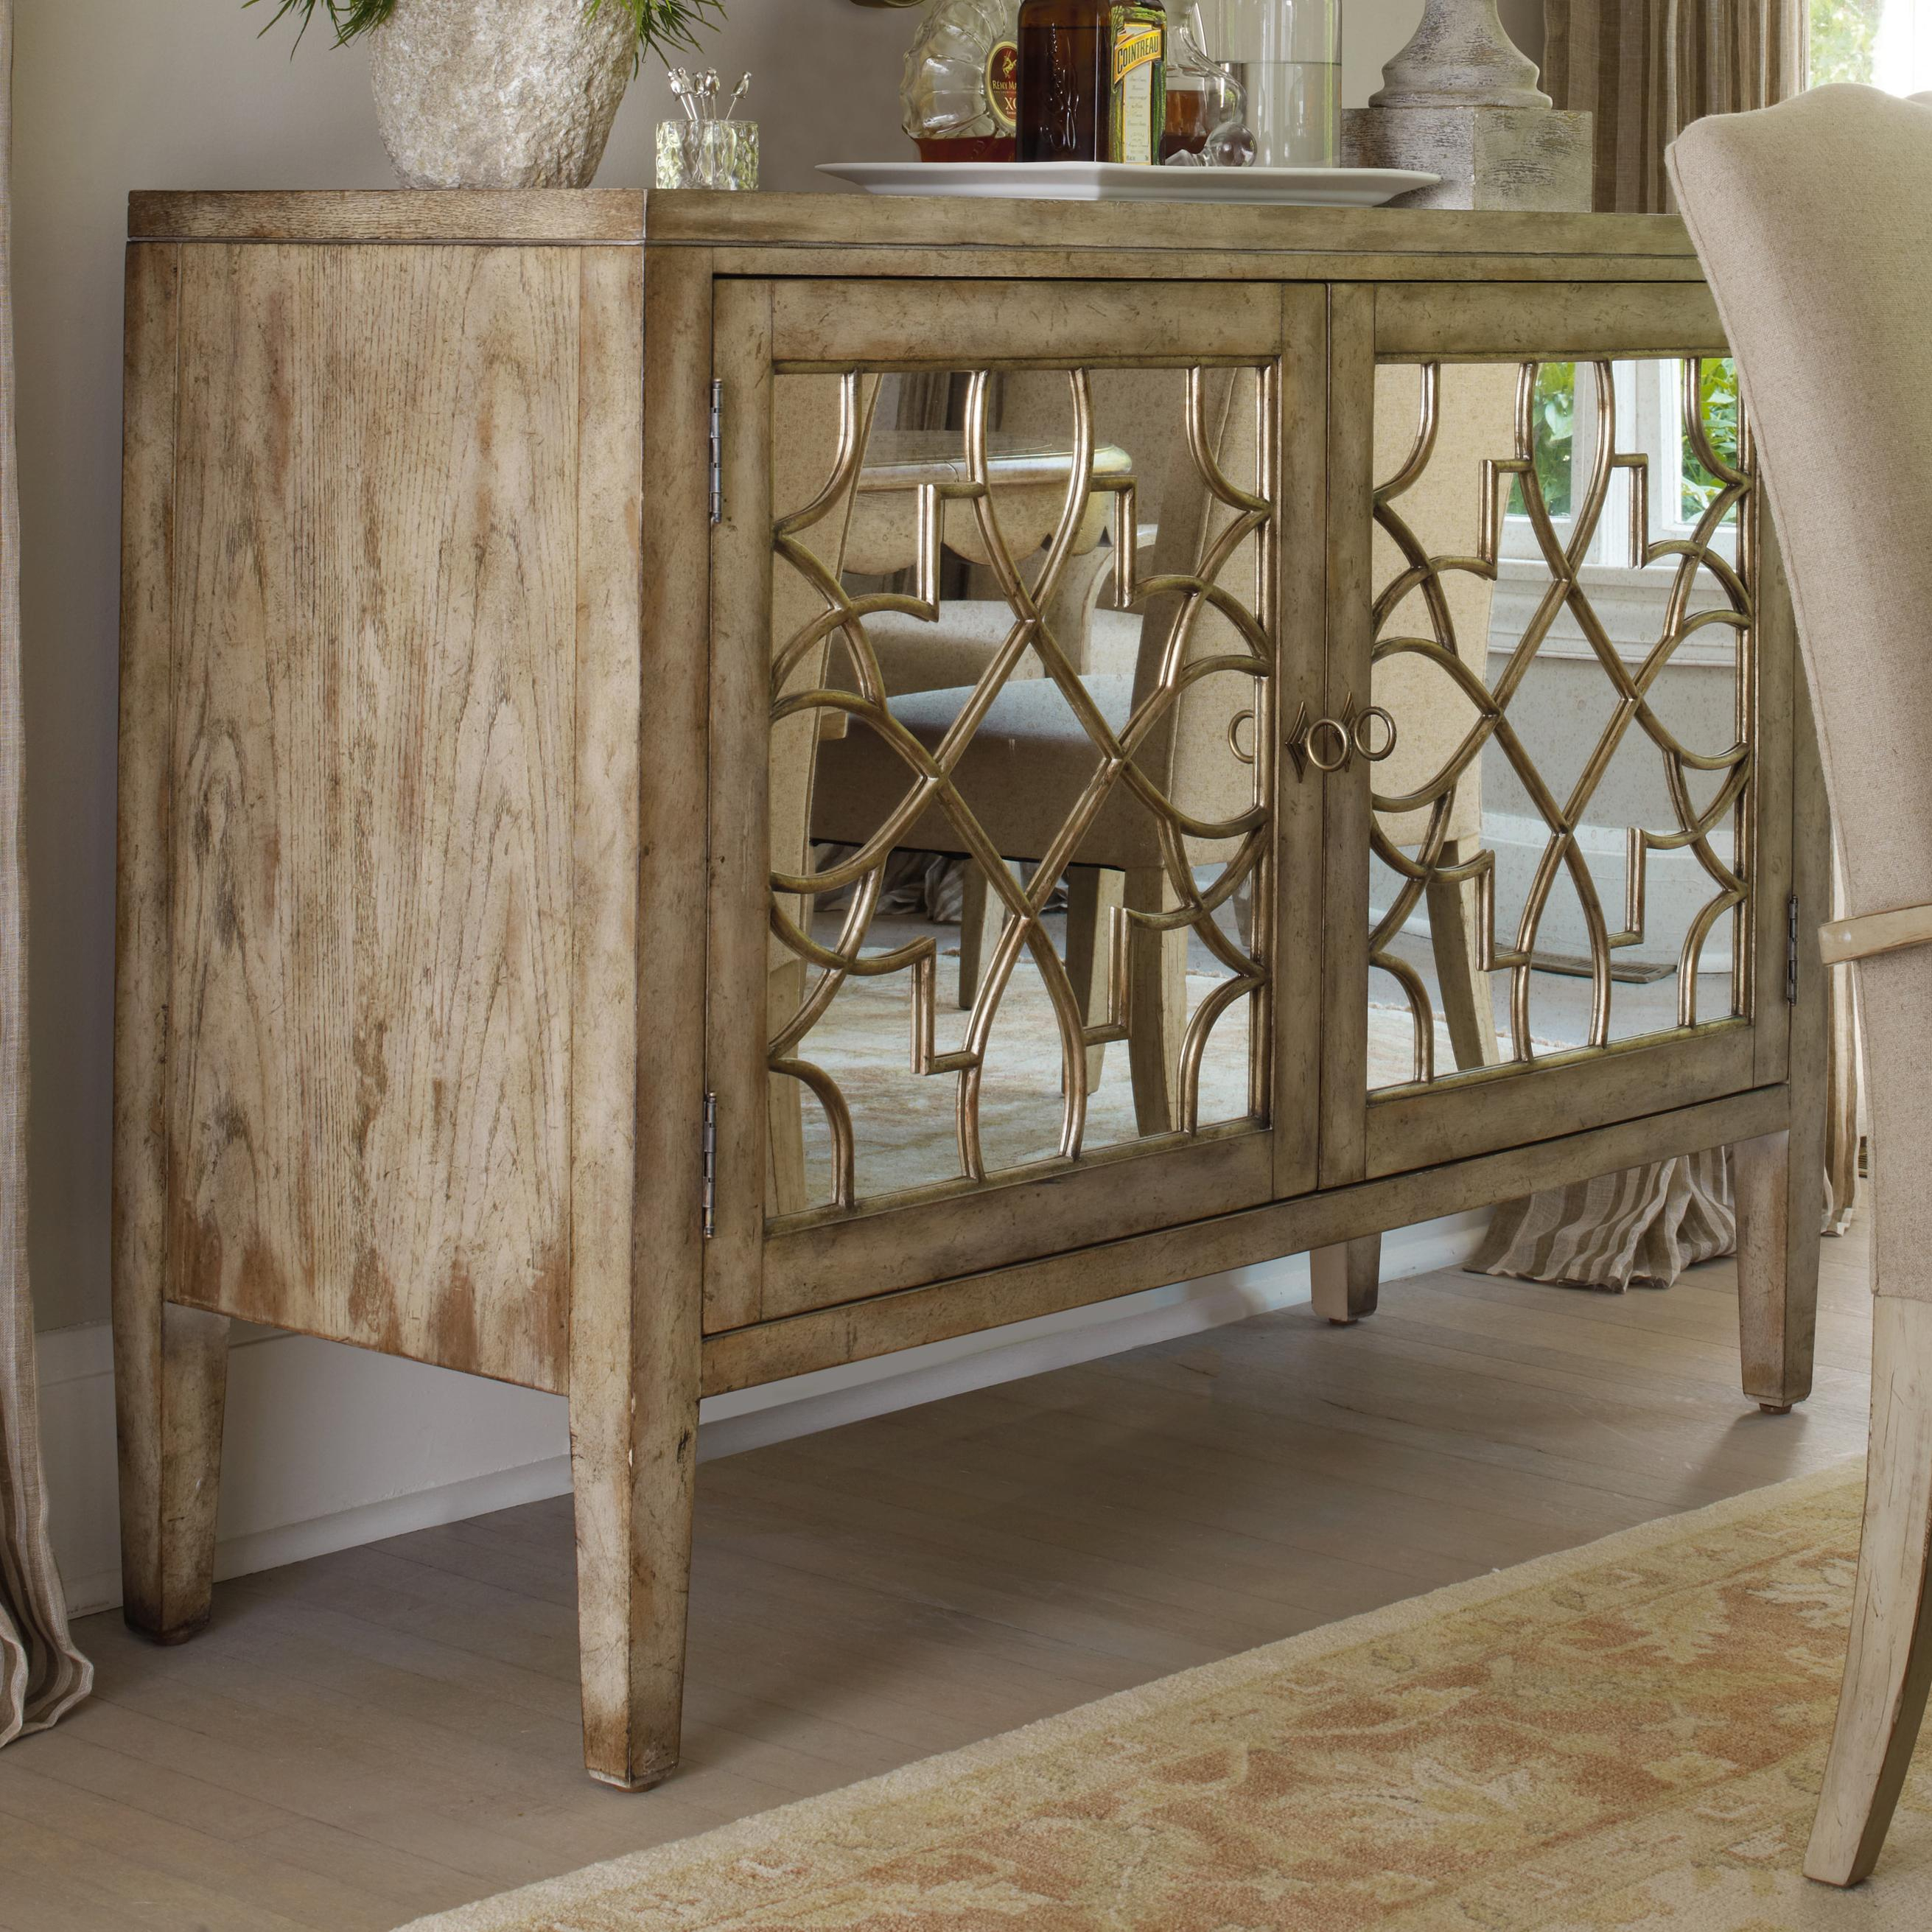 Hooker Furniture Sanctuary Two Door Mirrored Console With Contemporary Wooden Buffets With One Side Door Storage Cabinets And Two Drawers (View 11 of 30)